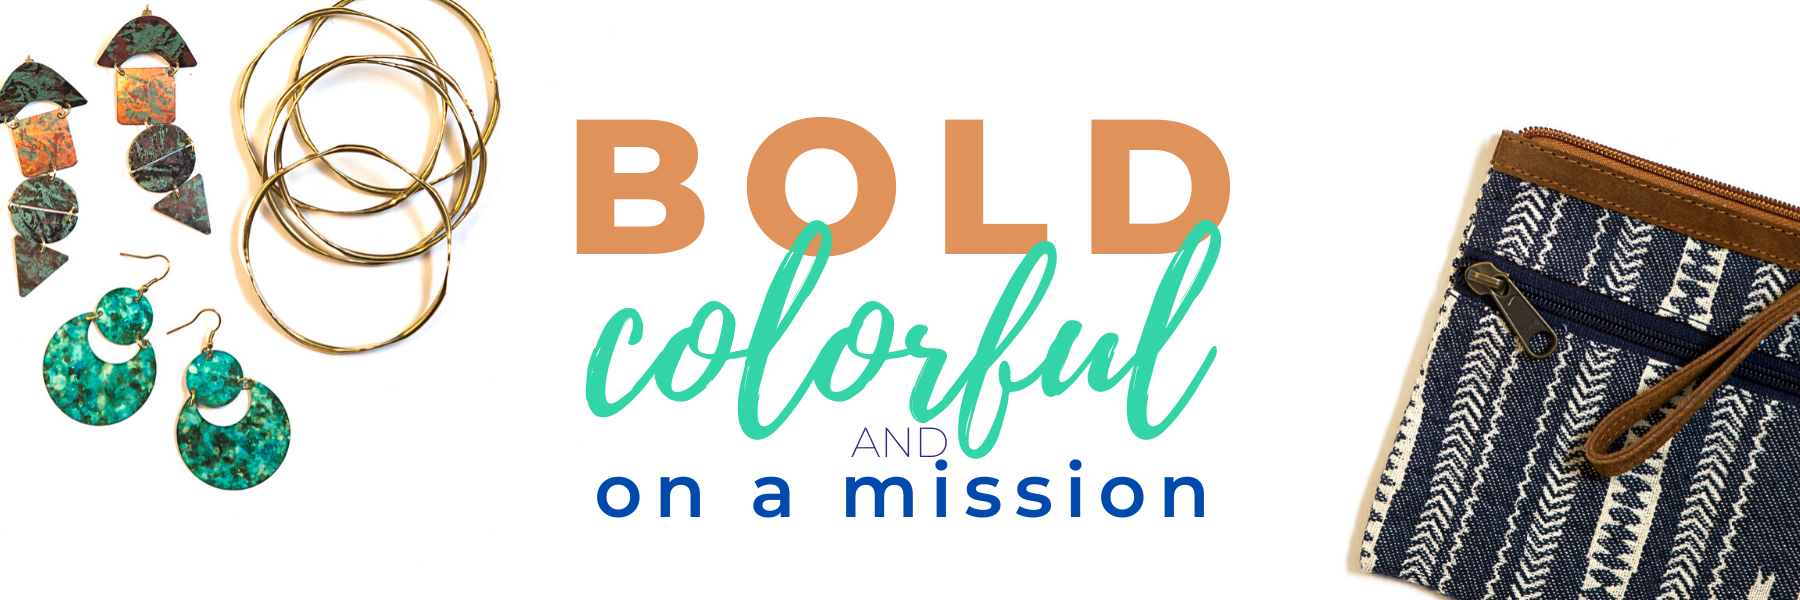 Colorful earings and purse, Text says Bold Colorful and on a Mission. | Fair Anita